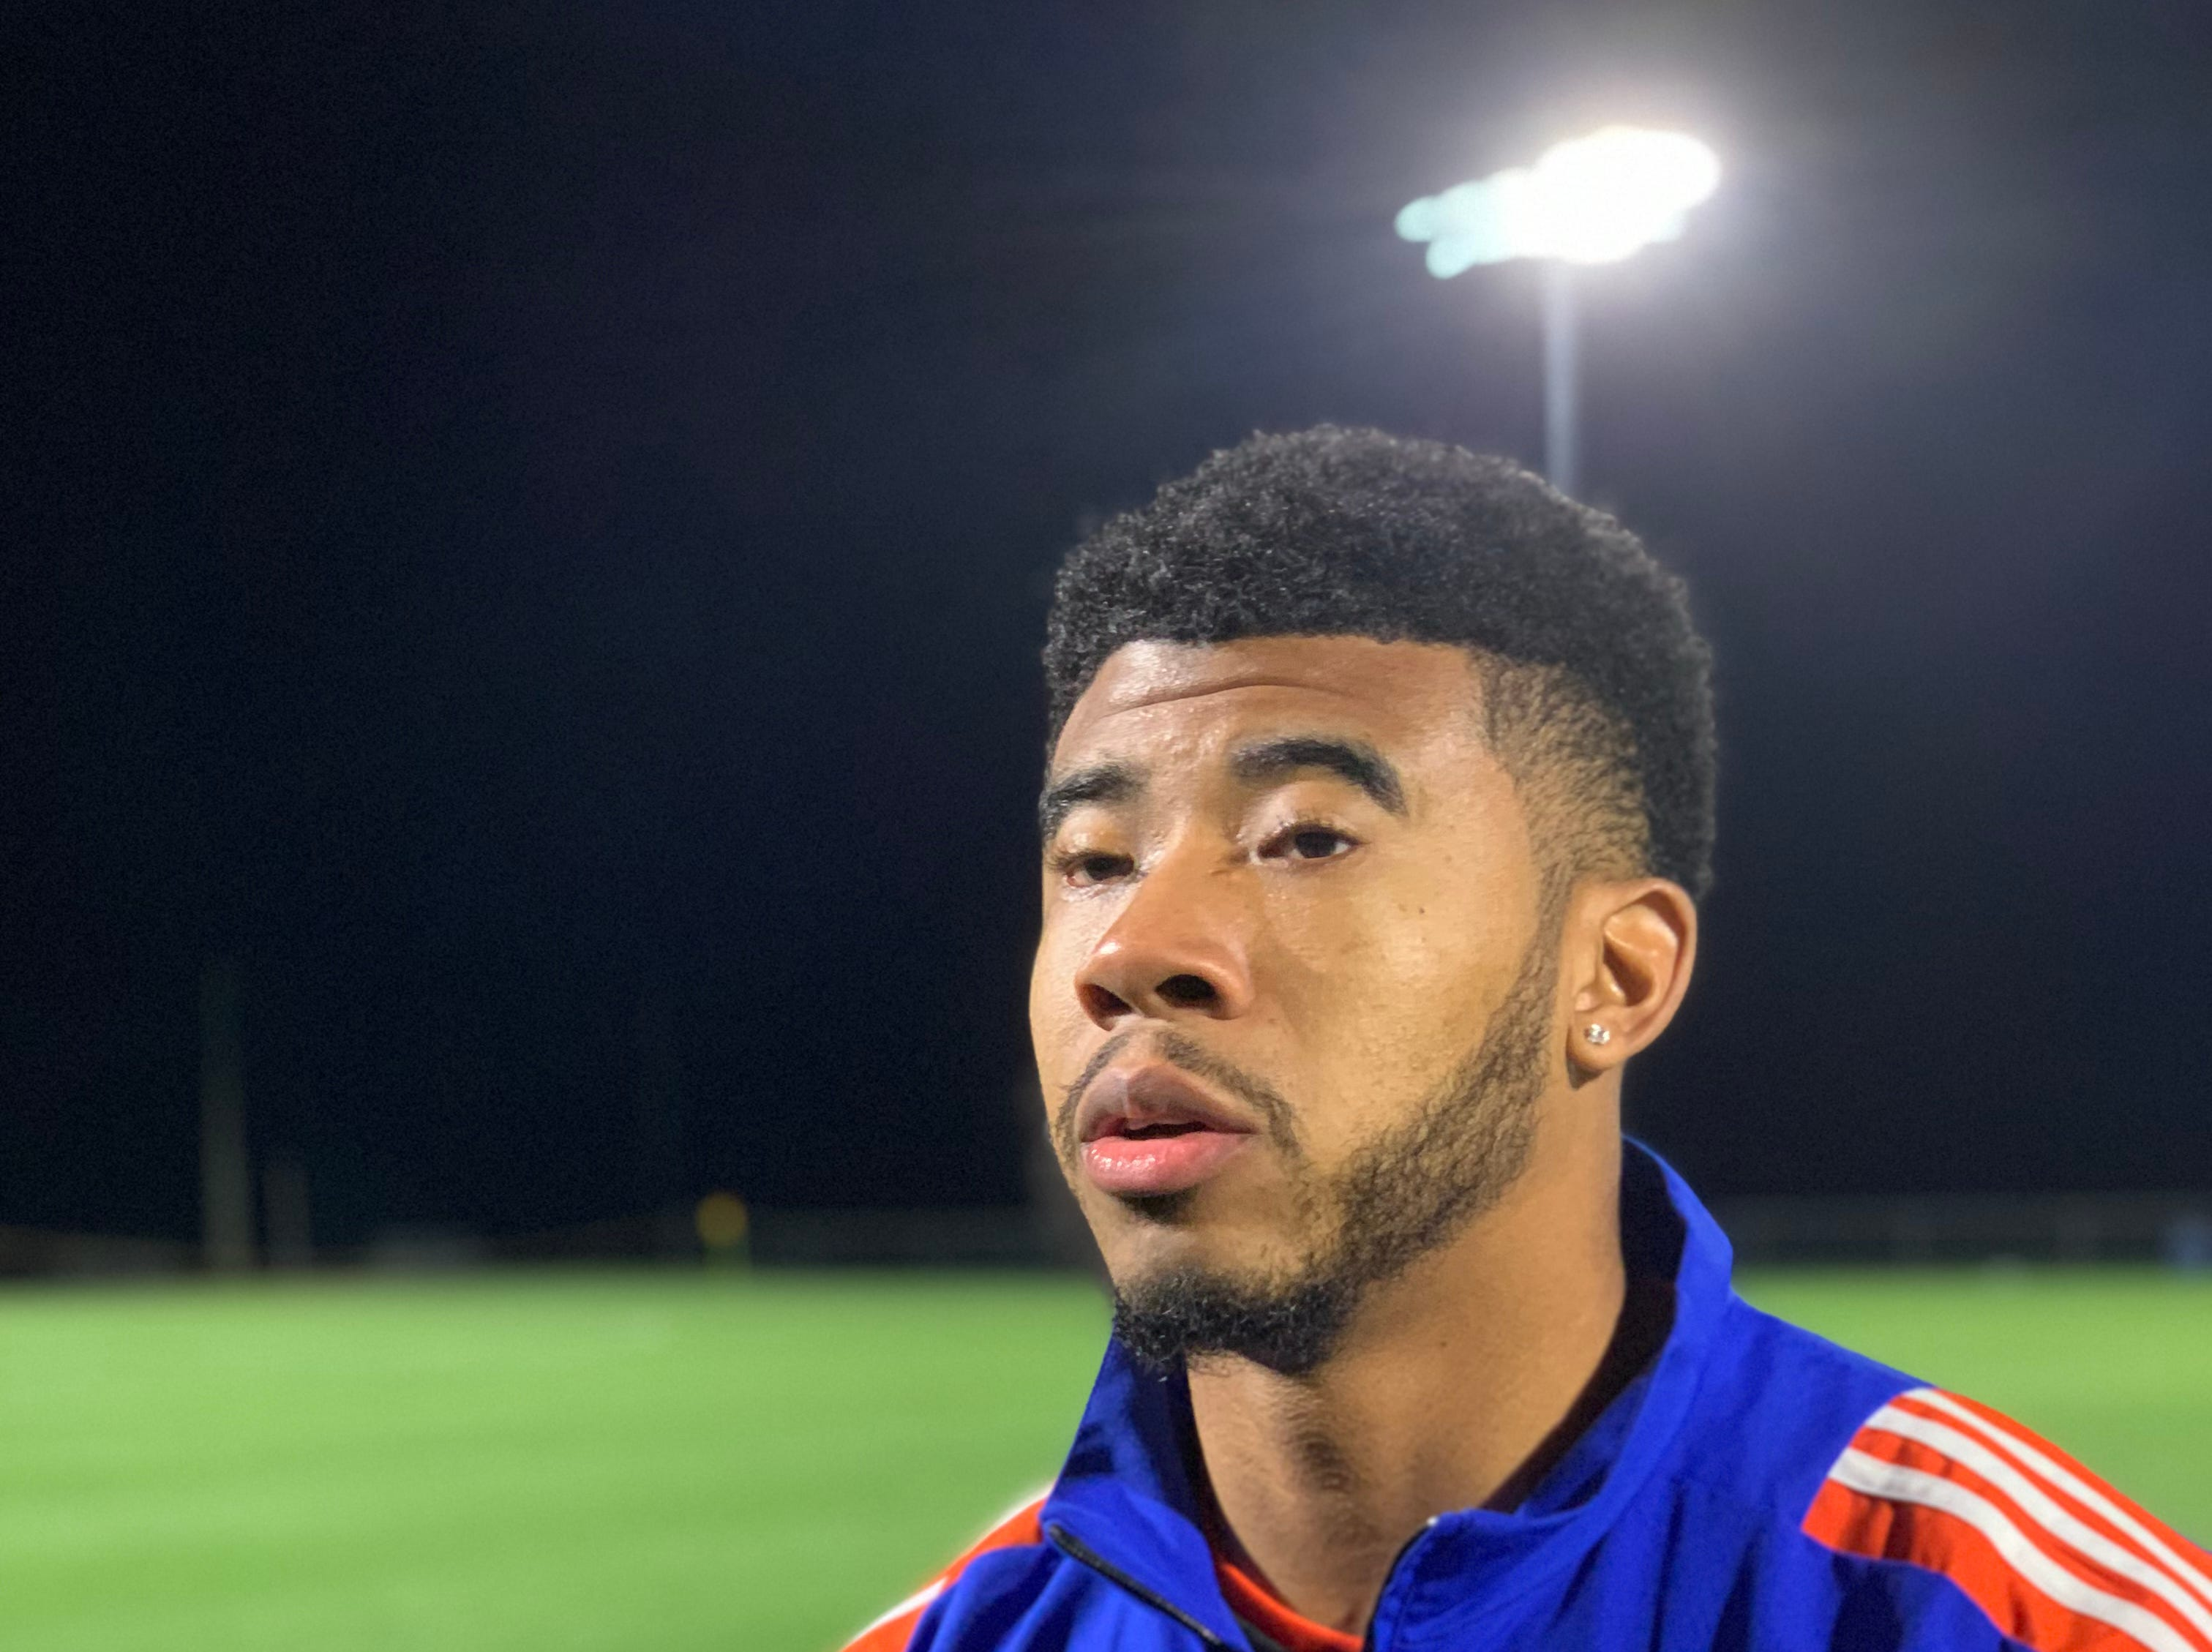 Forward Emery Welshman takes questions from the media following FC Cincinnati's 1-1 draw with the Montreal Impact on Jan. 30.